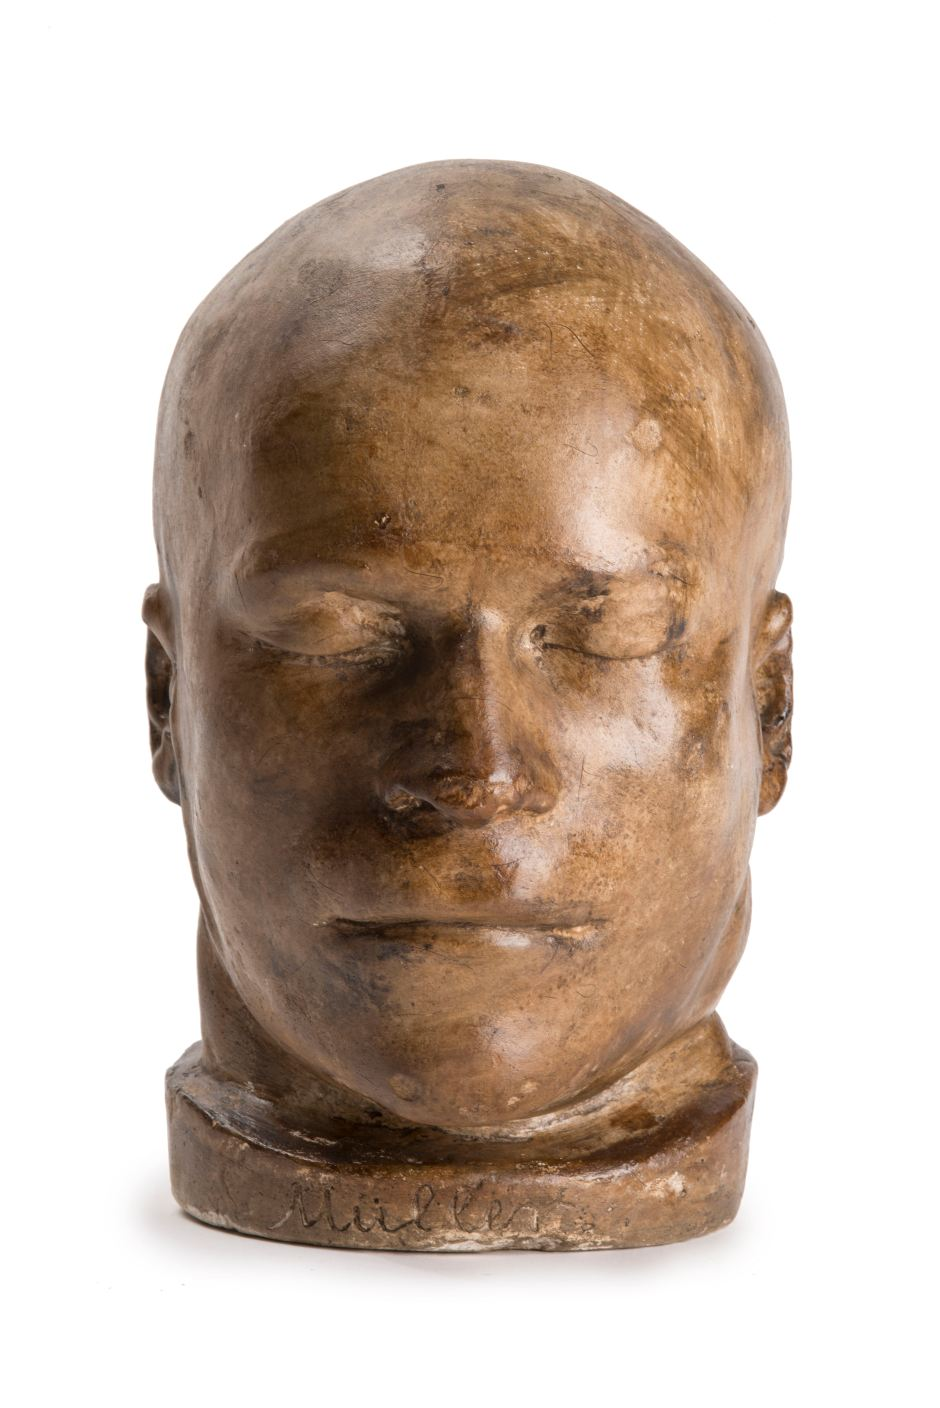 19. Death mask of Franz Muller, a German tailor who committed the first British railway murder, 1864 ∏ Museum of London